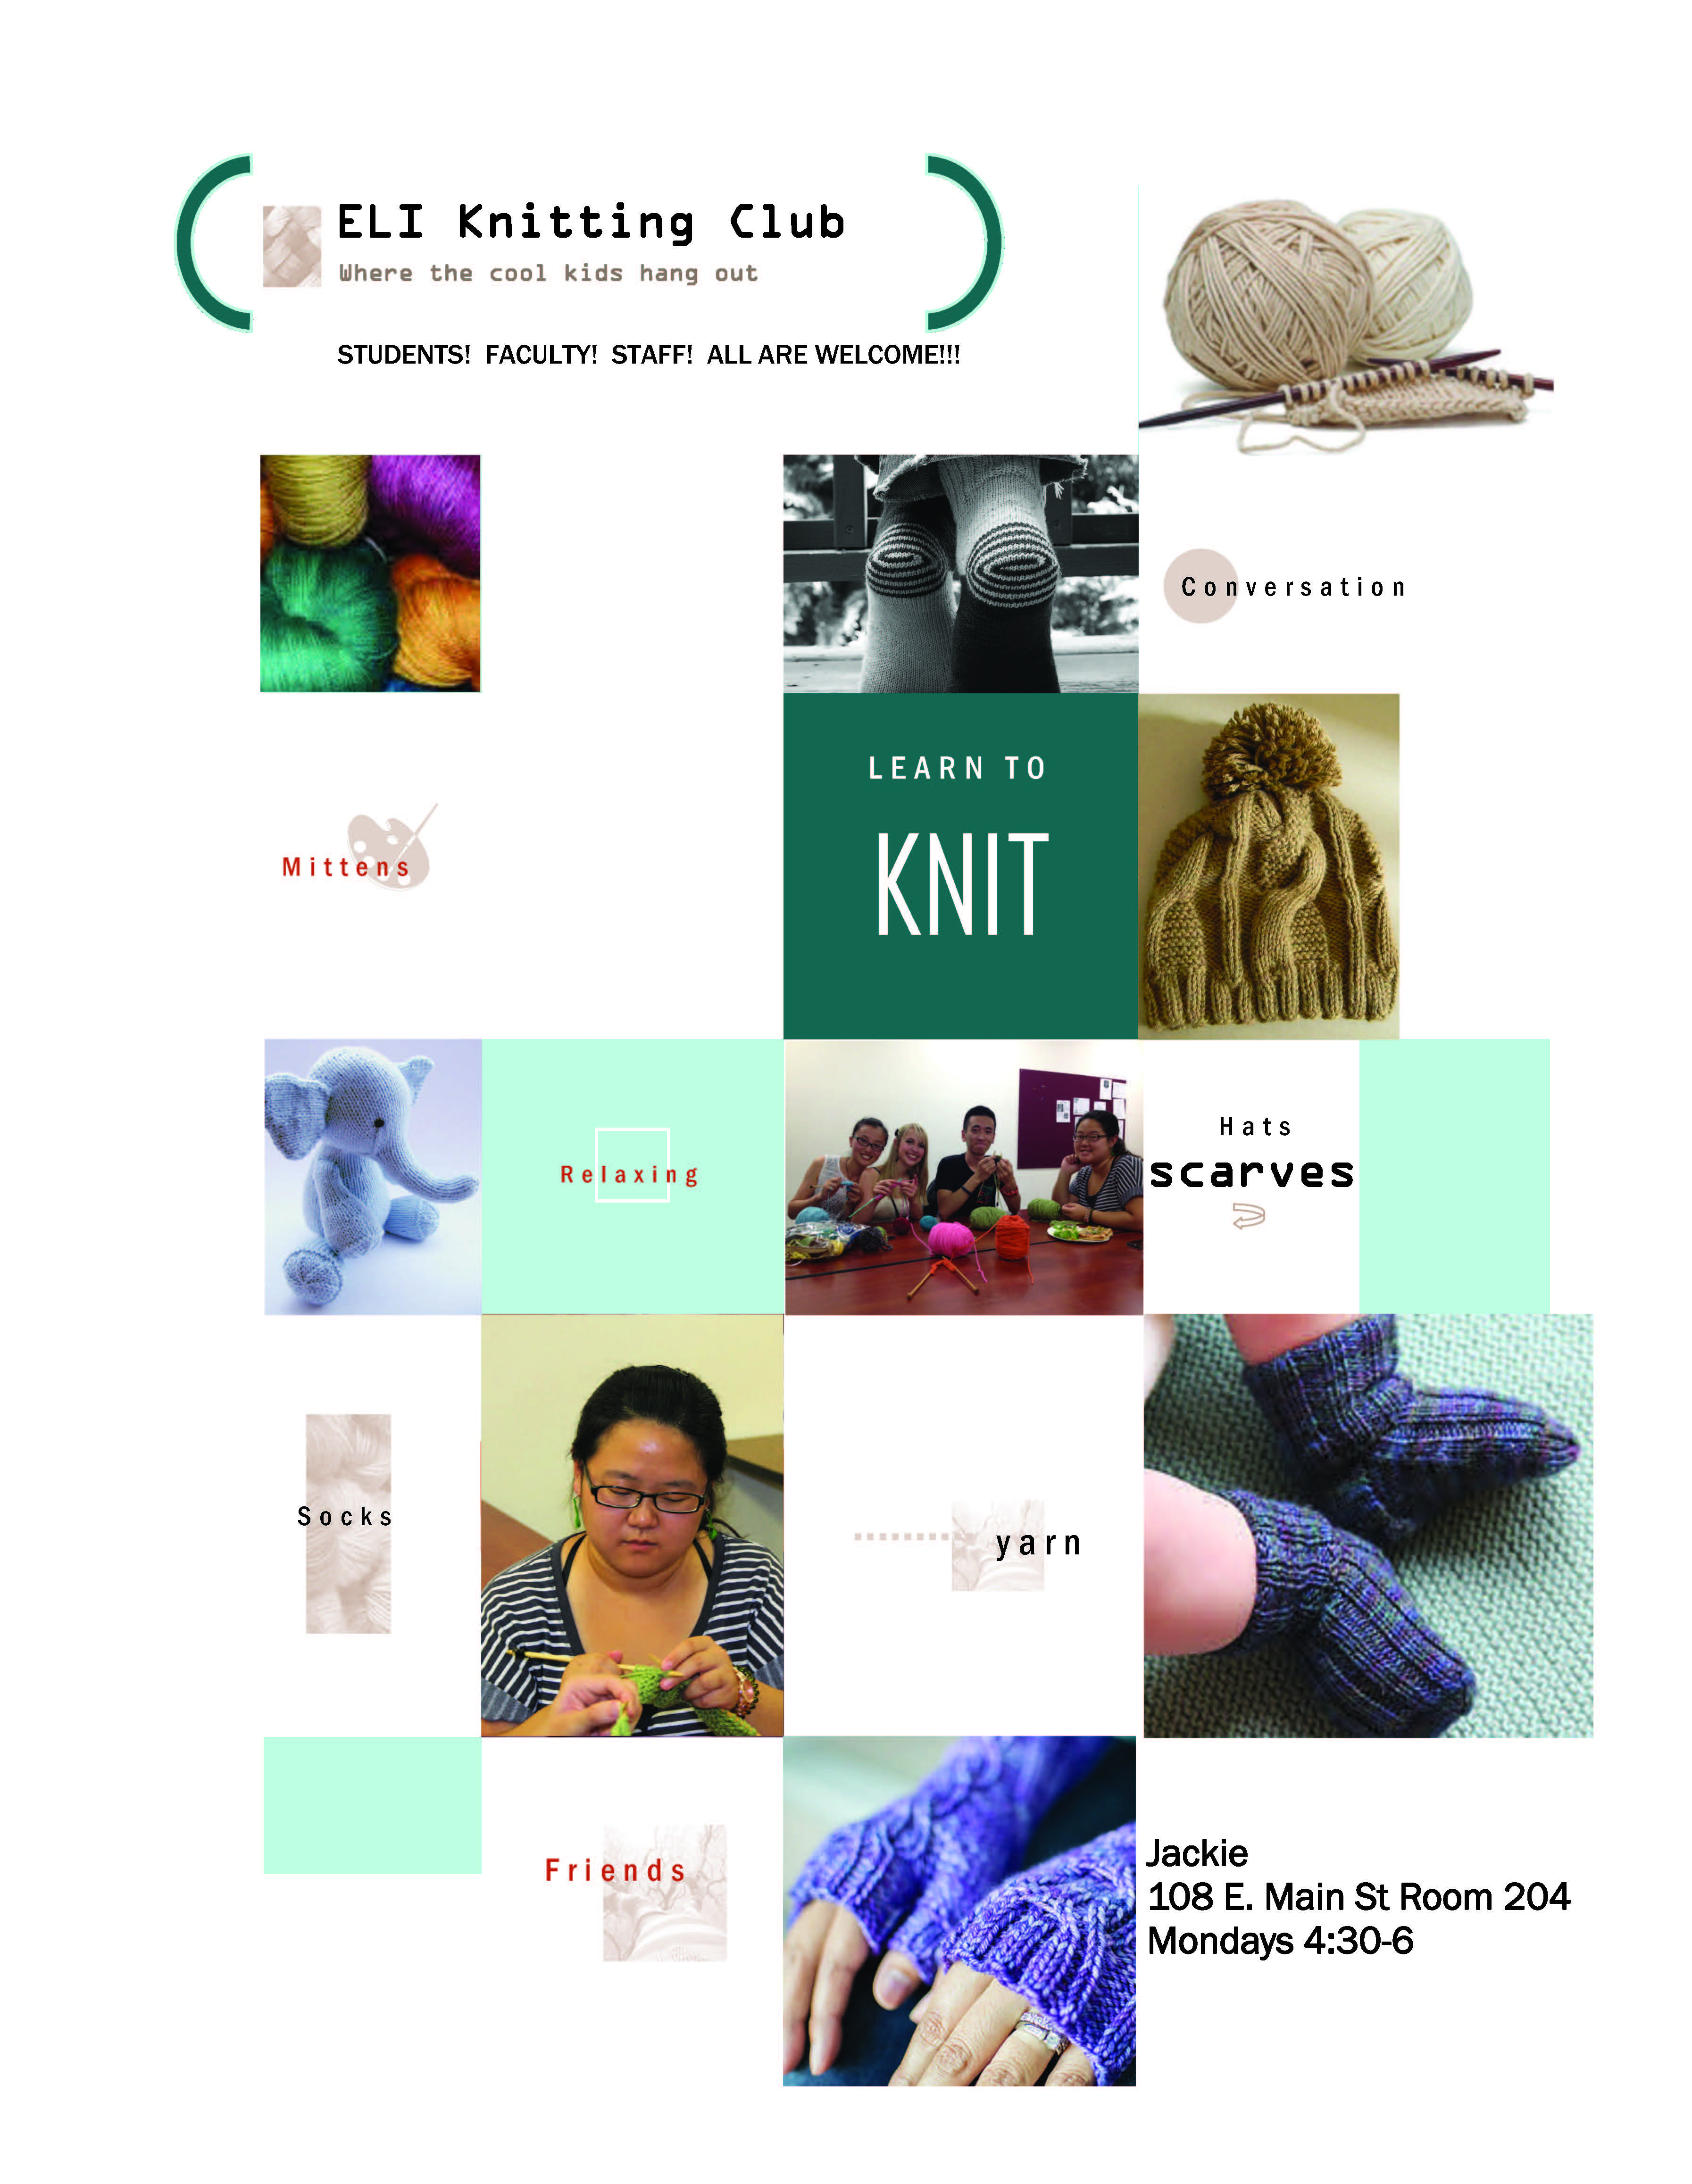 Knitting Club Book : Join the eli knitting club english language institute